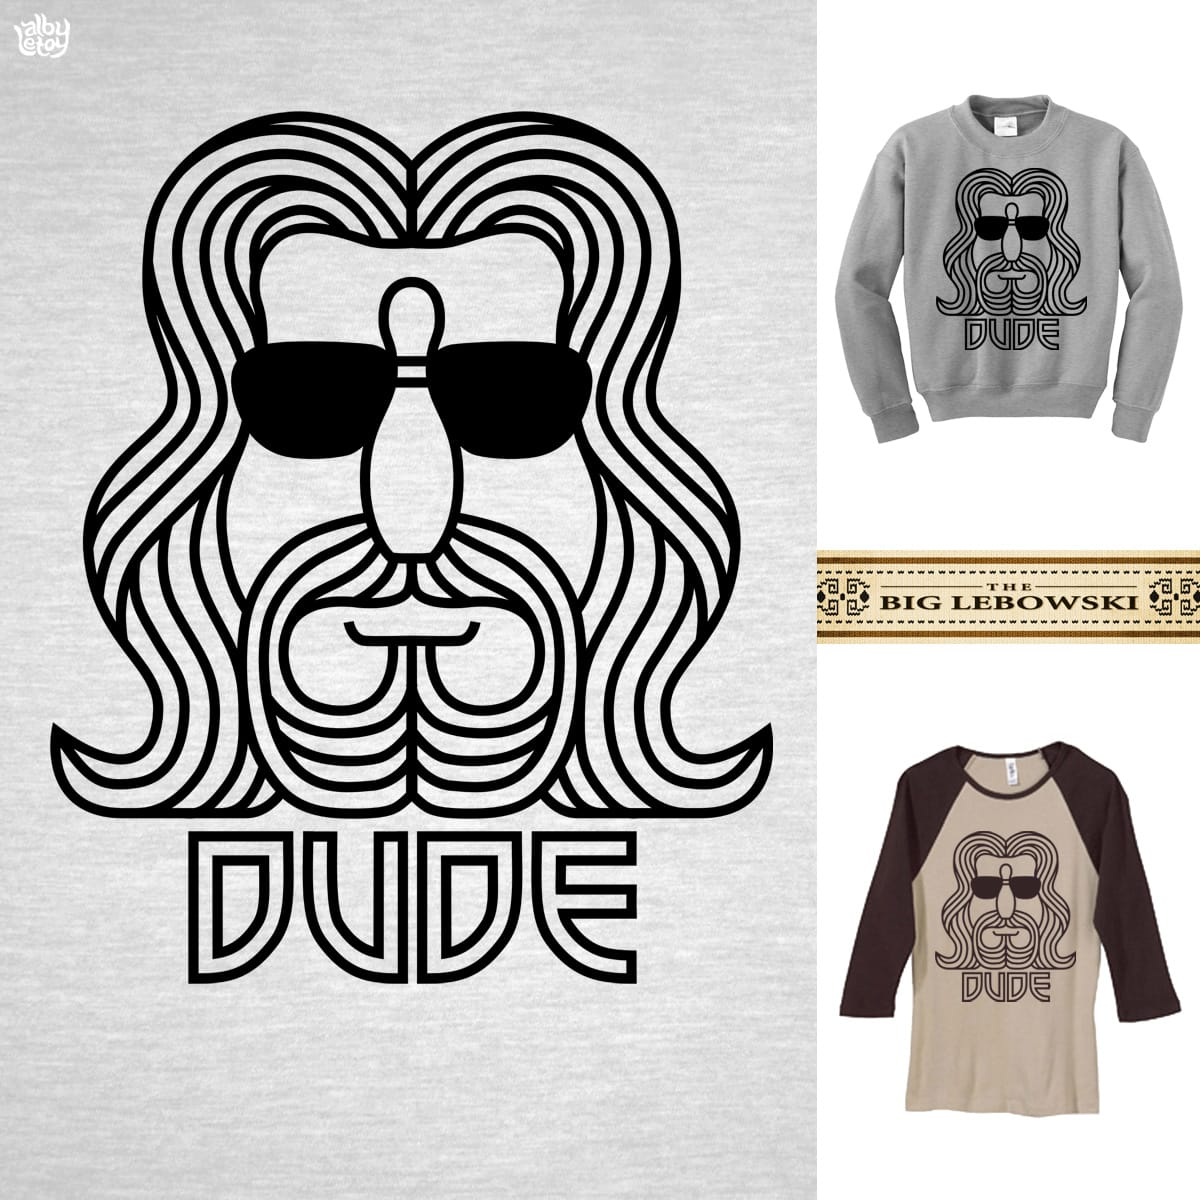 The Dude by albyletoy on Threadless